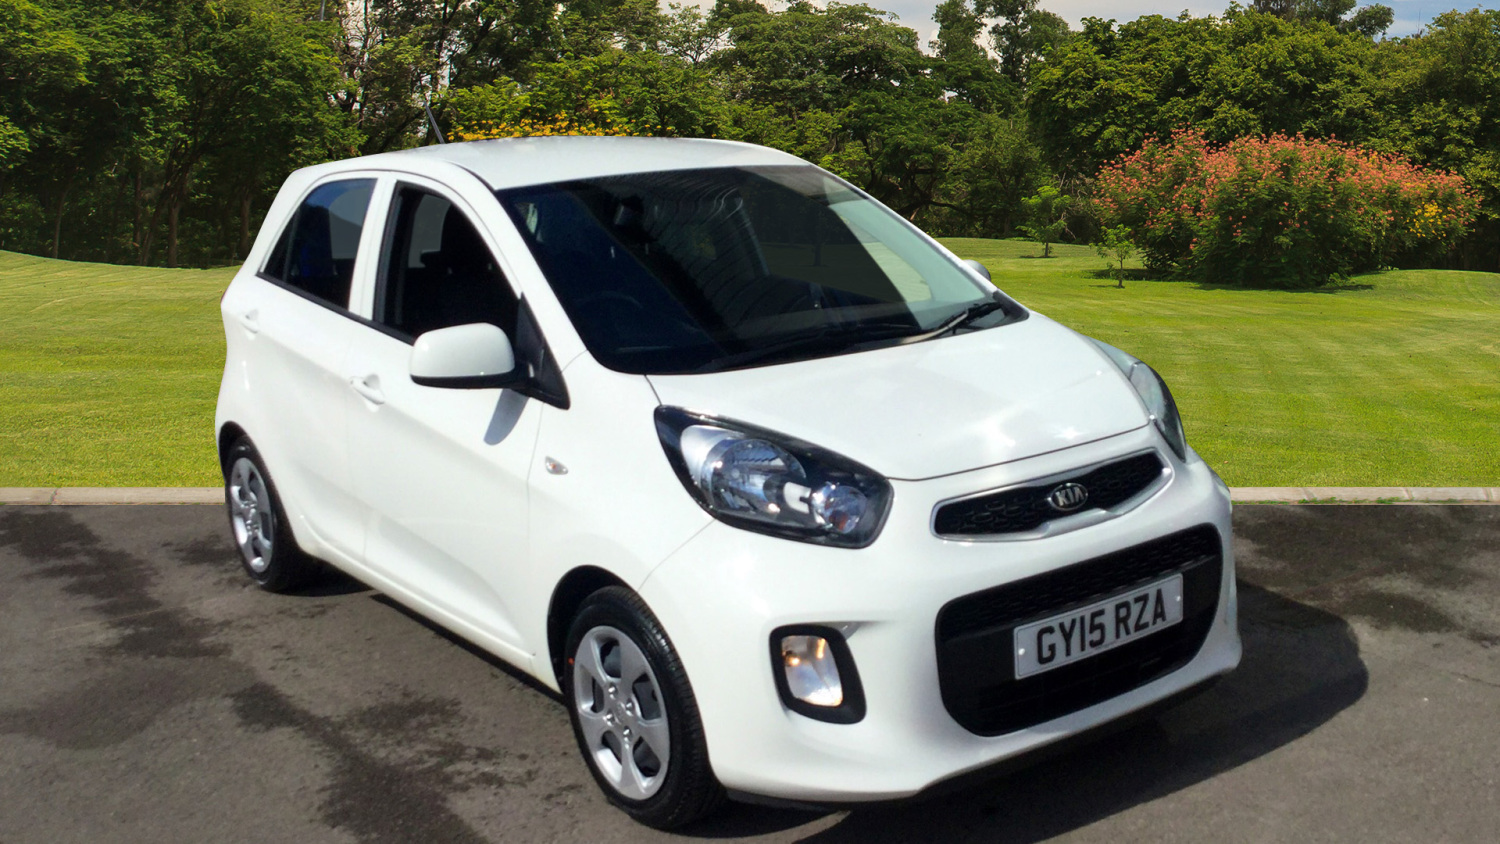 used kia picanto 1 0 1 5dr petrol hatchback for sale. Black Bedroom Furniture Sets. Home Design Ideas